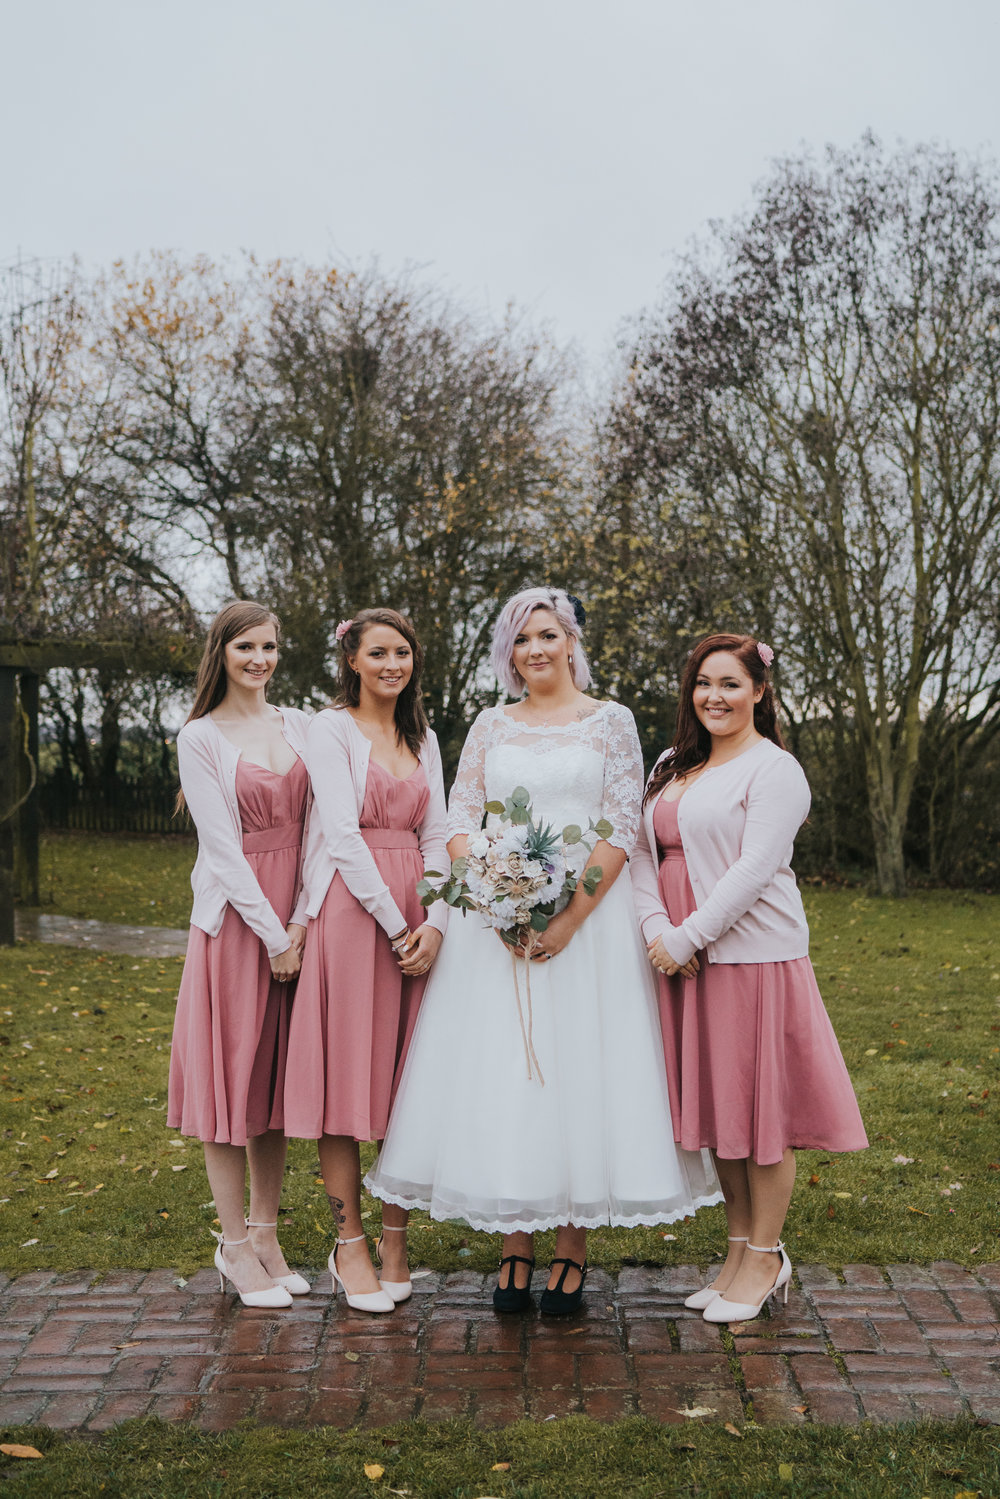 rhia-james-rustic-crabbs-barn-vintage-50s-retro-wedding-grace-elizabeth-colchester-essex-alternative-relaxed-wedding-family-photography-devon-suffolk-norfolk-essex (99 of 138).jpg